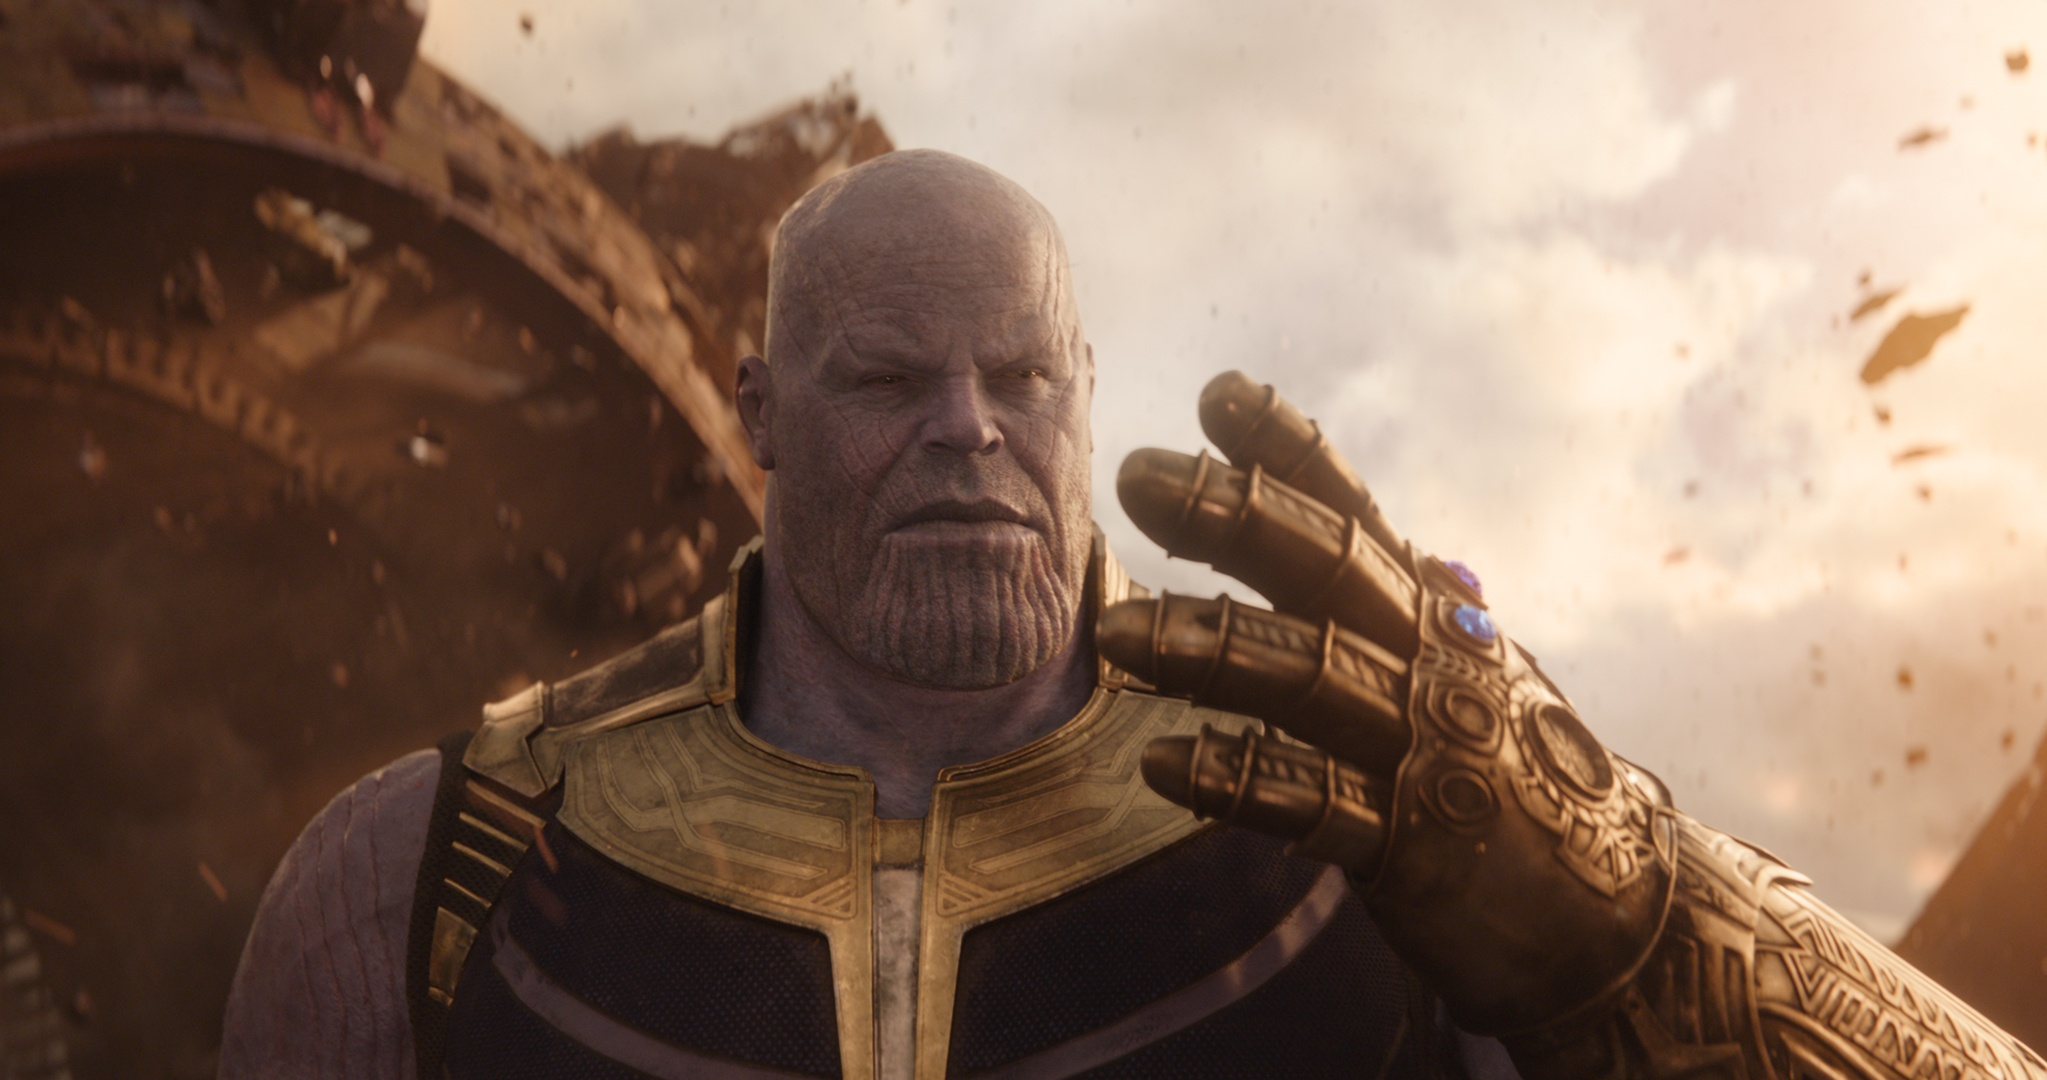 What you need to know about AVENGERS: INFINITY WAR